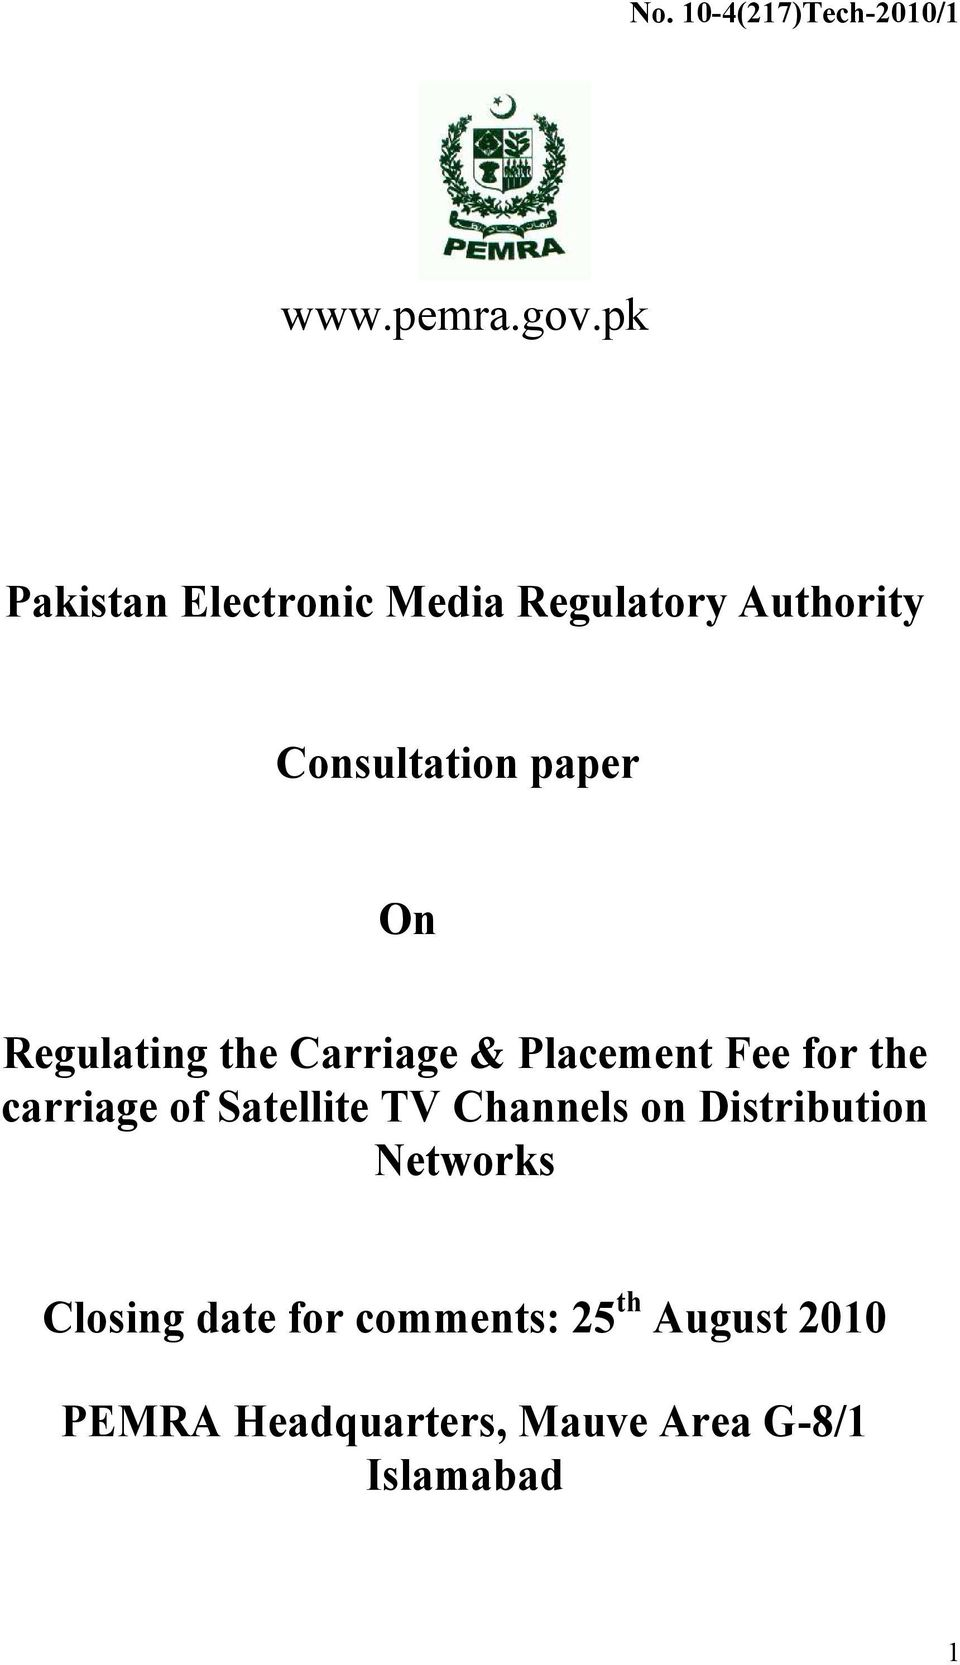 Regulating the Carriage & Placement Fee for the carriage of Satellite TV